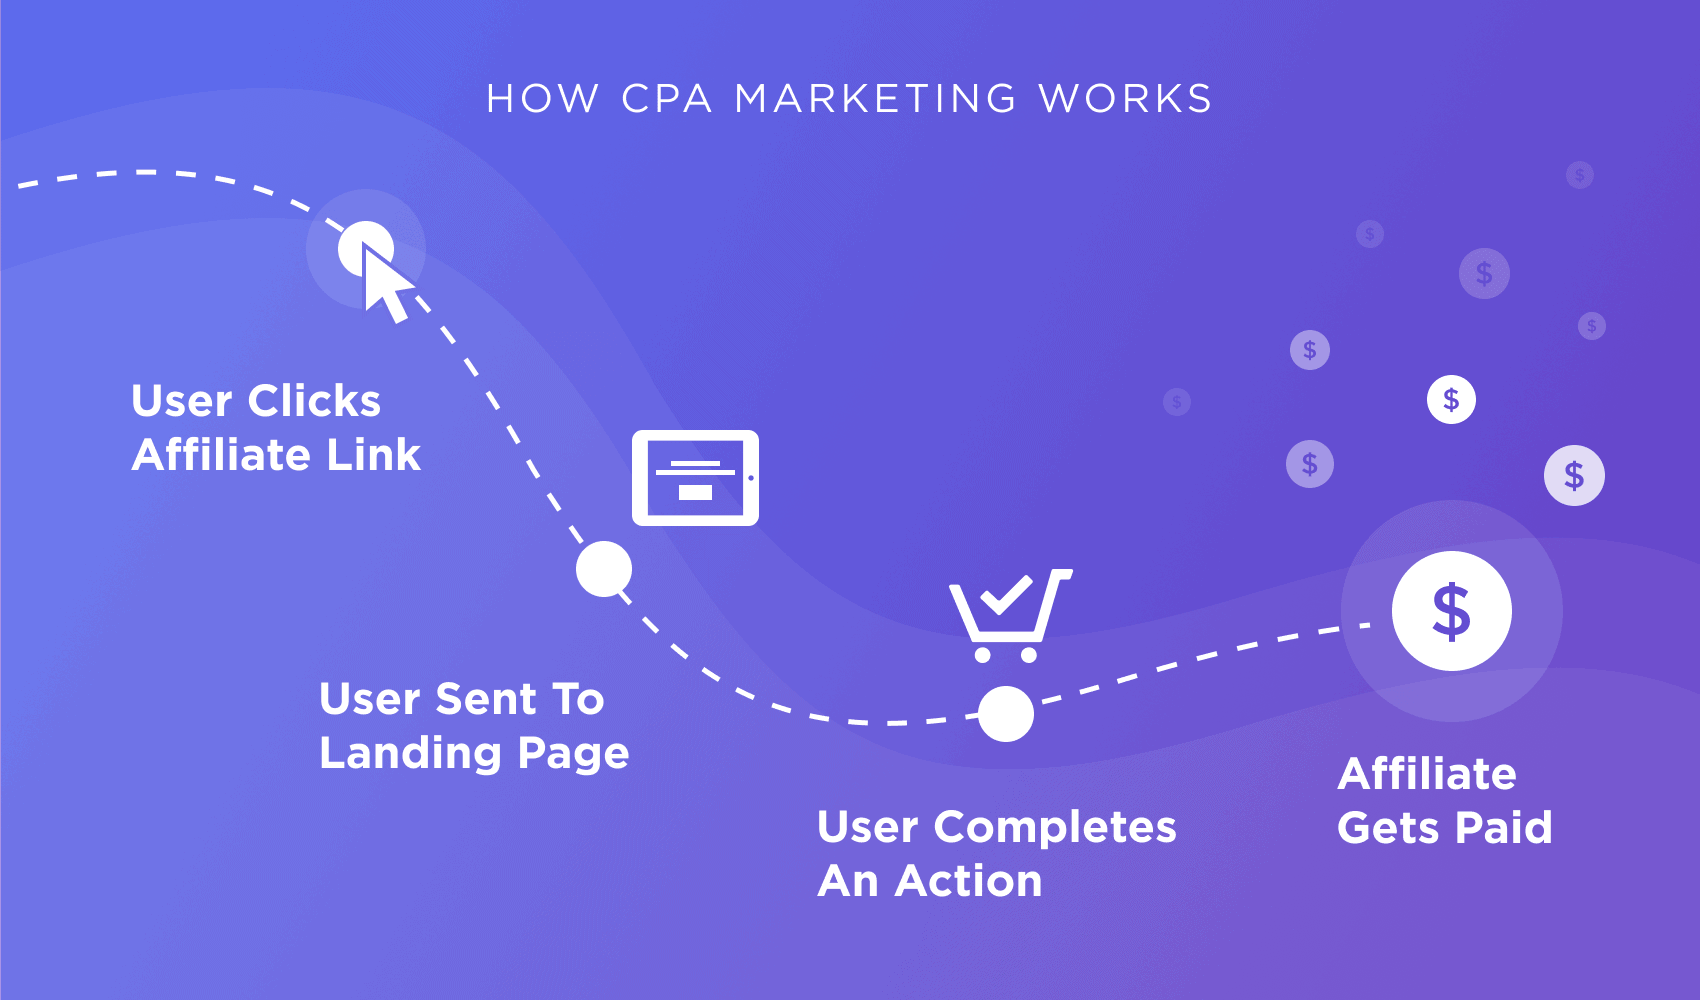 what is CPA marketing visual